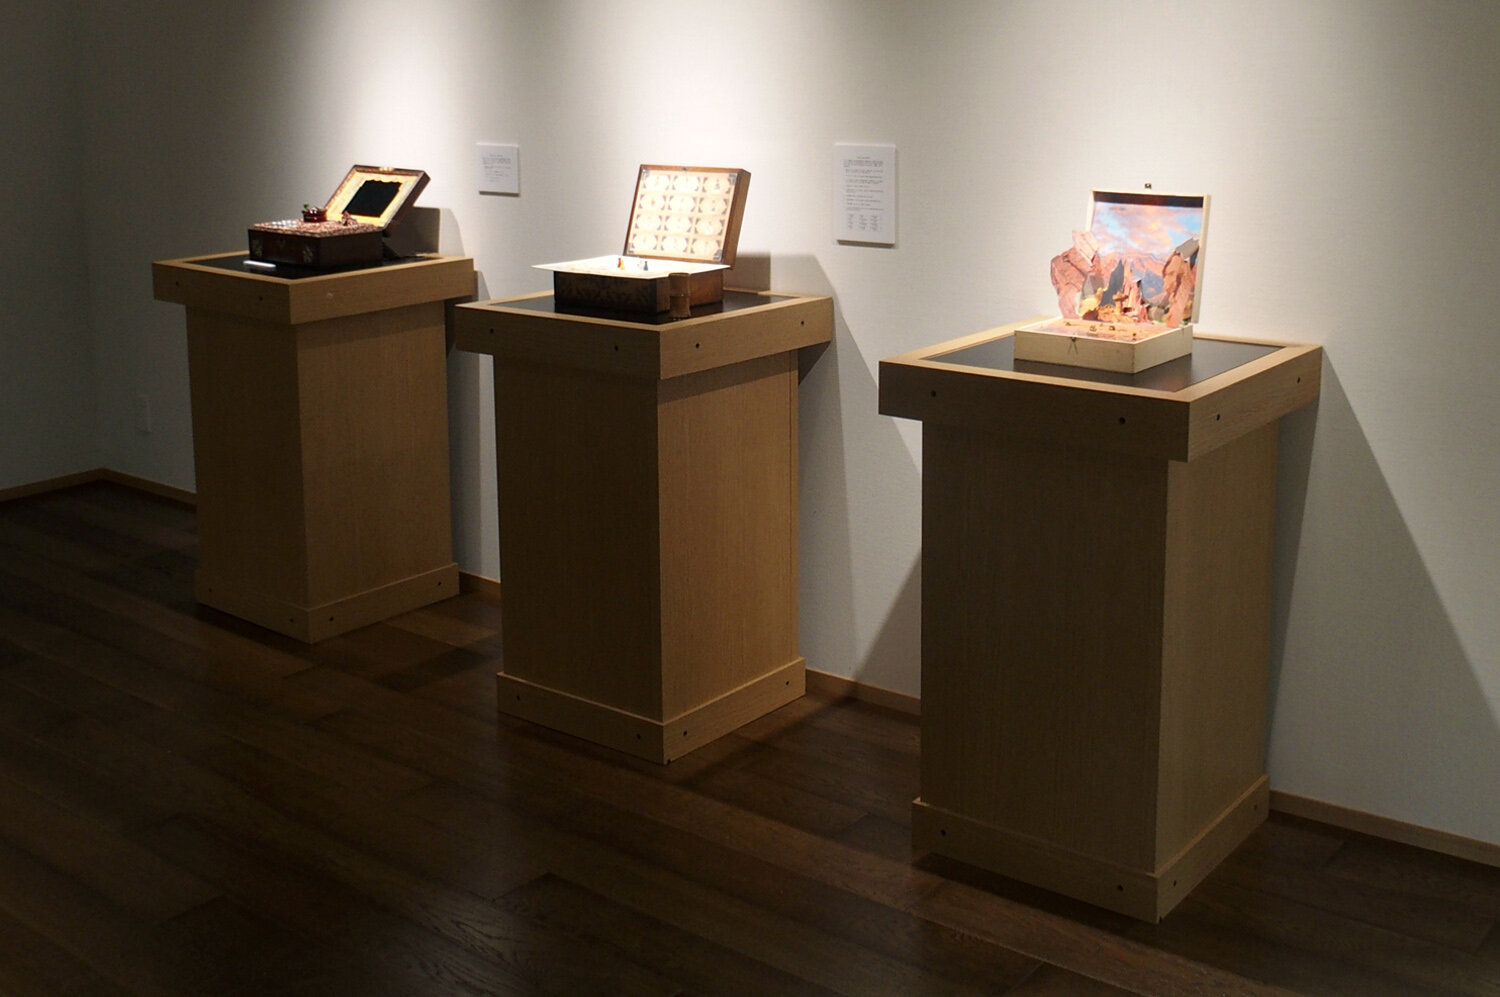 Shoyeido Gallery, Kyoto - installation including  Scentscape, Game Box and Memory Box